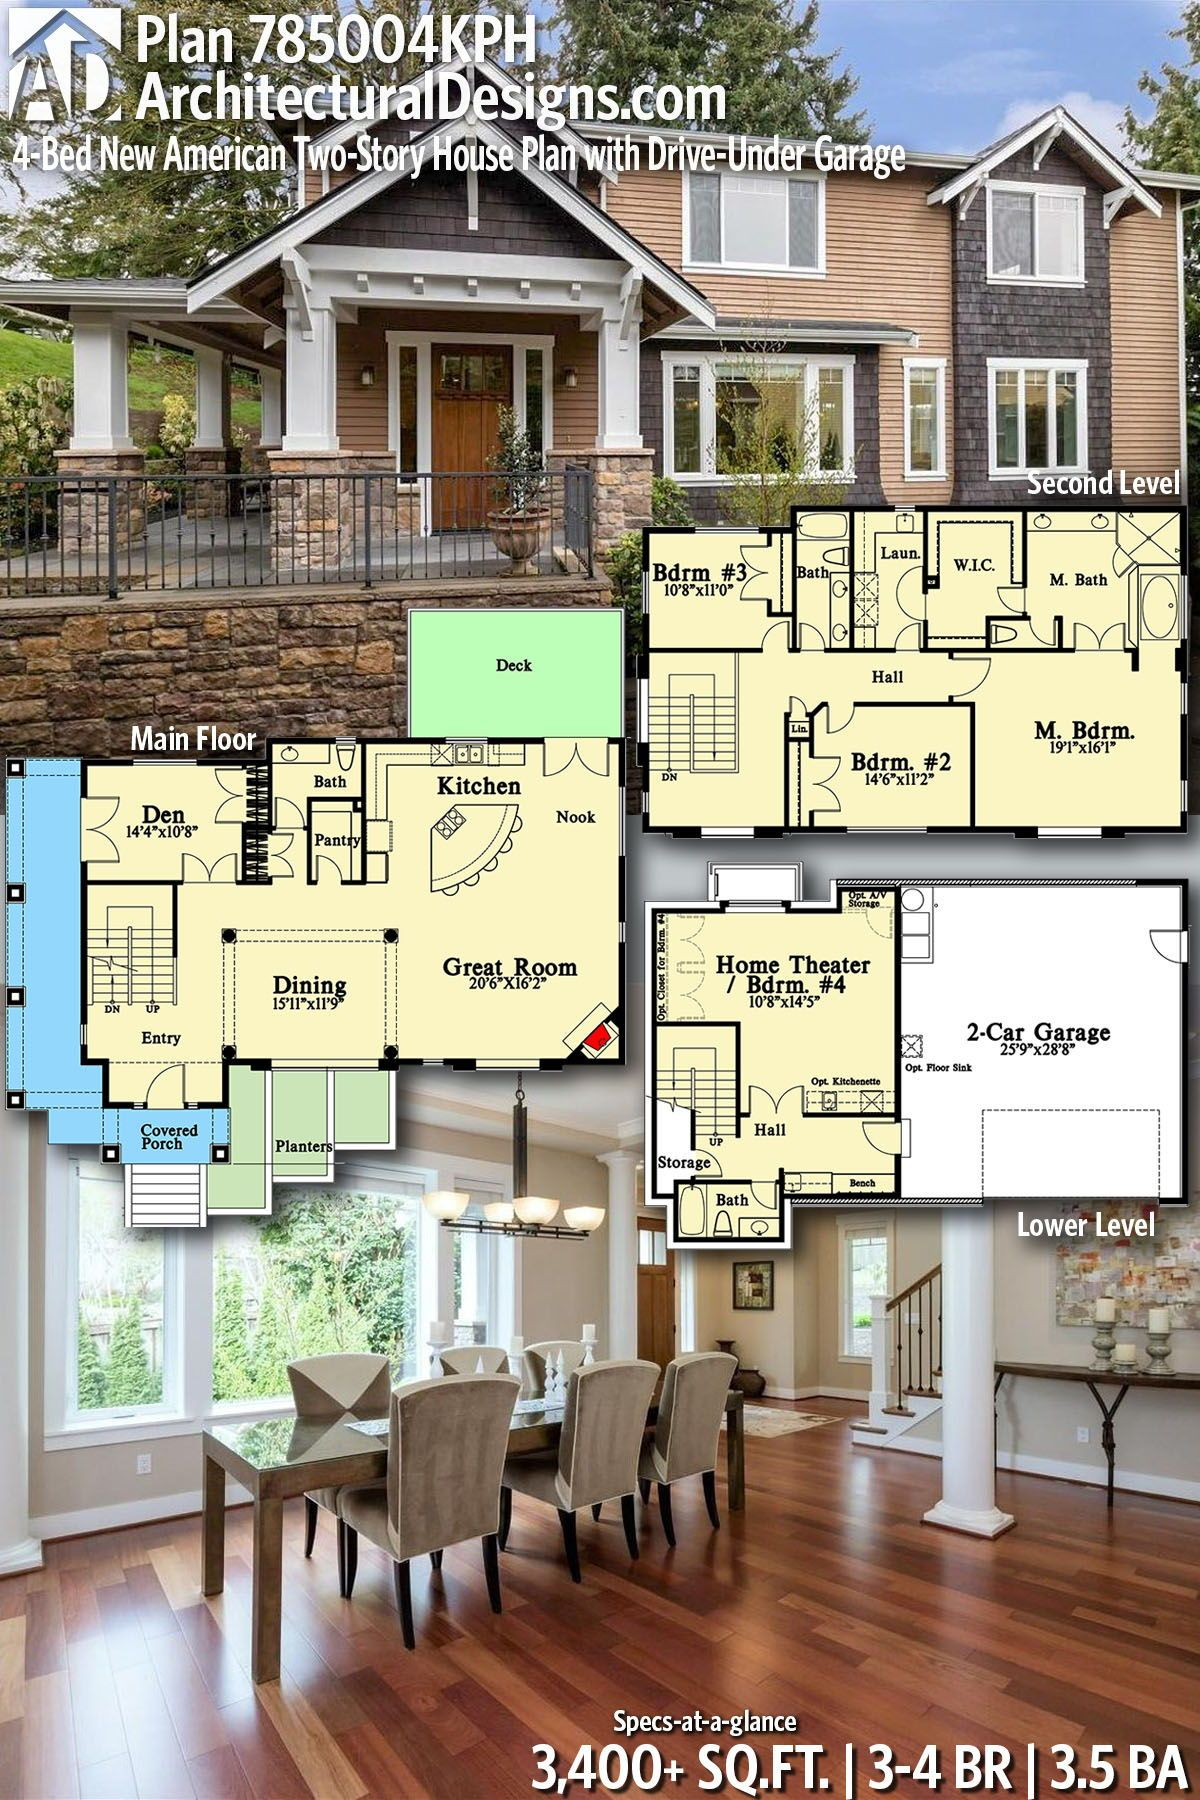 Plan 785004kph 4 Bed New American Two Story House Plan With Drive Under Garage House Plans Two Story House Plans Story House